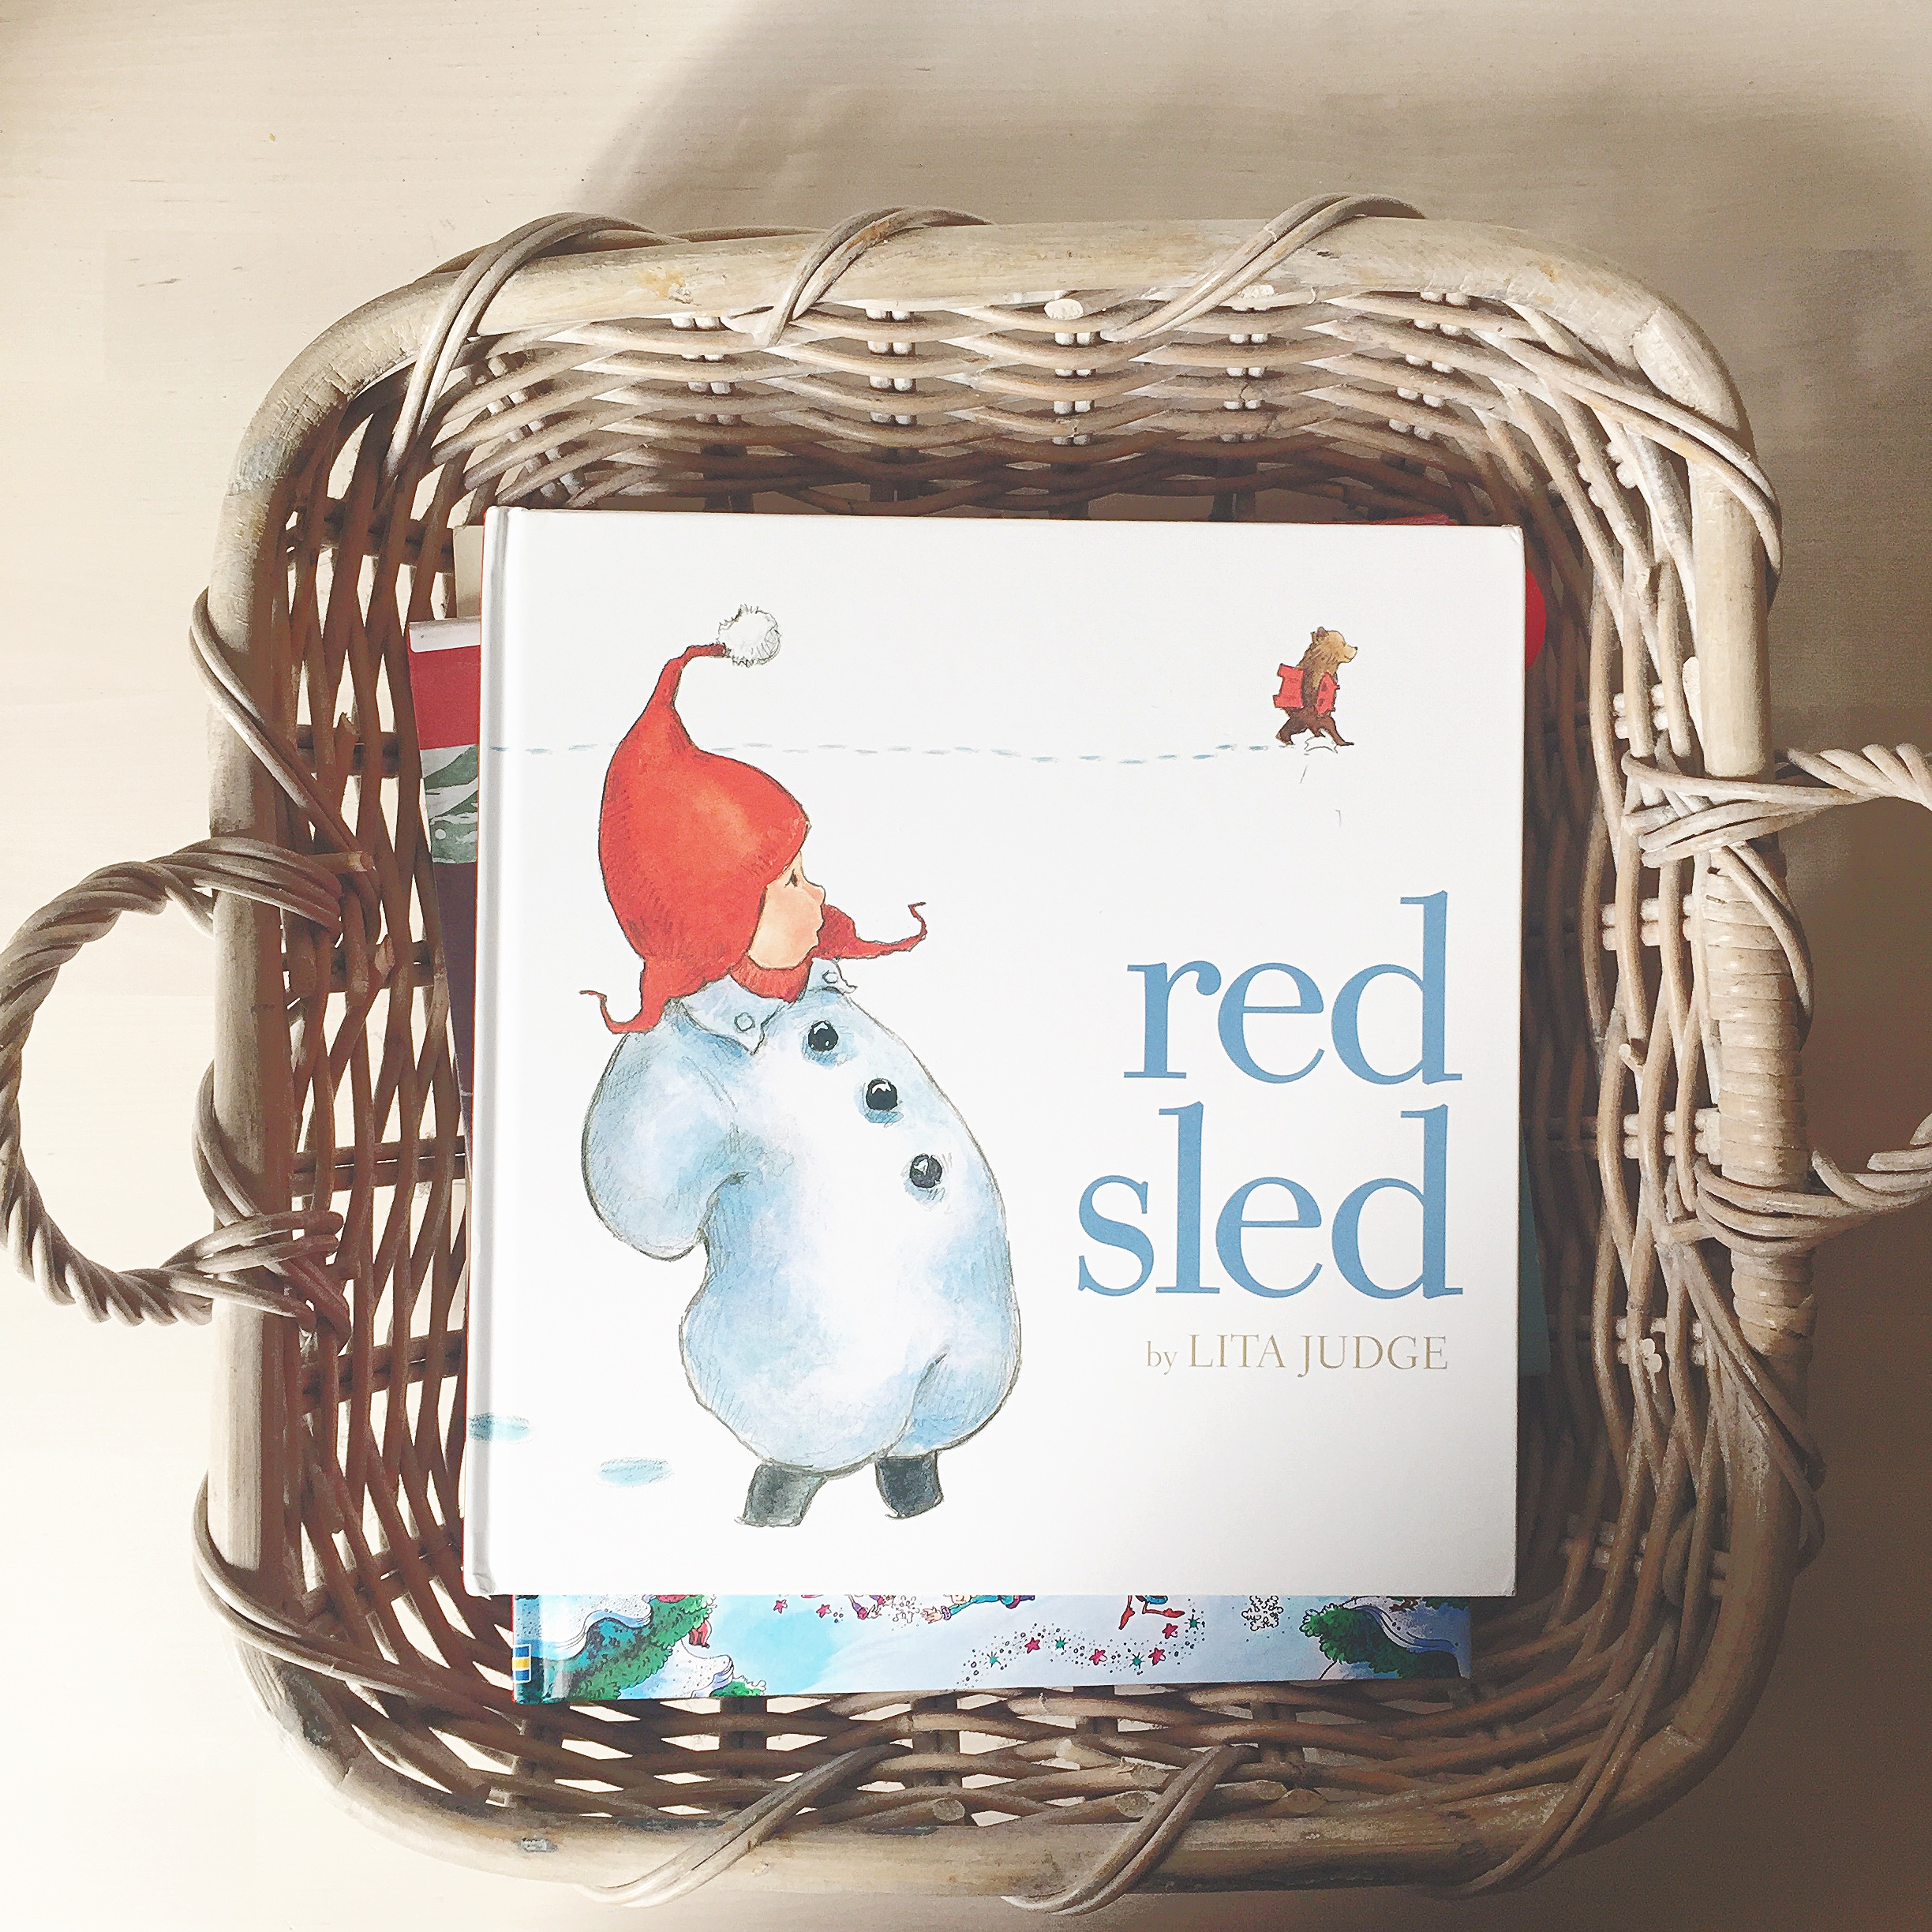 Best Sledding Picture Books for Kids